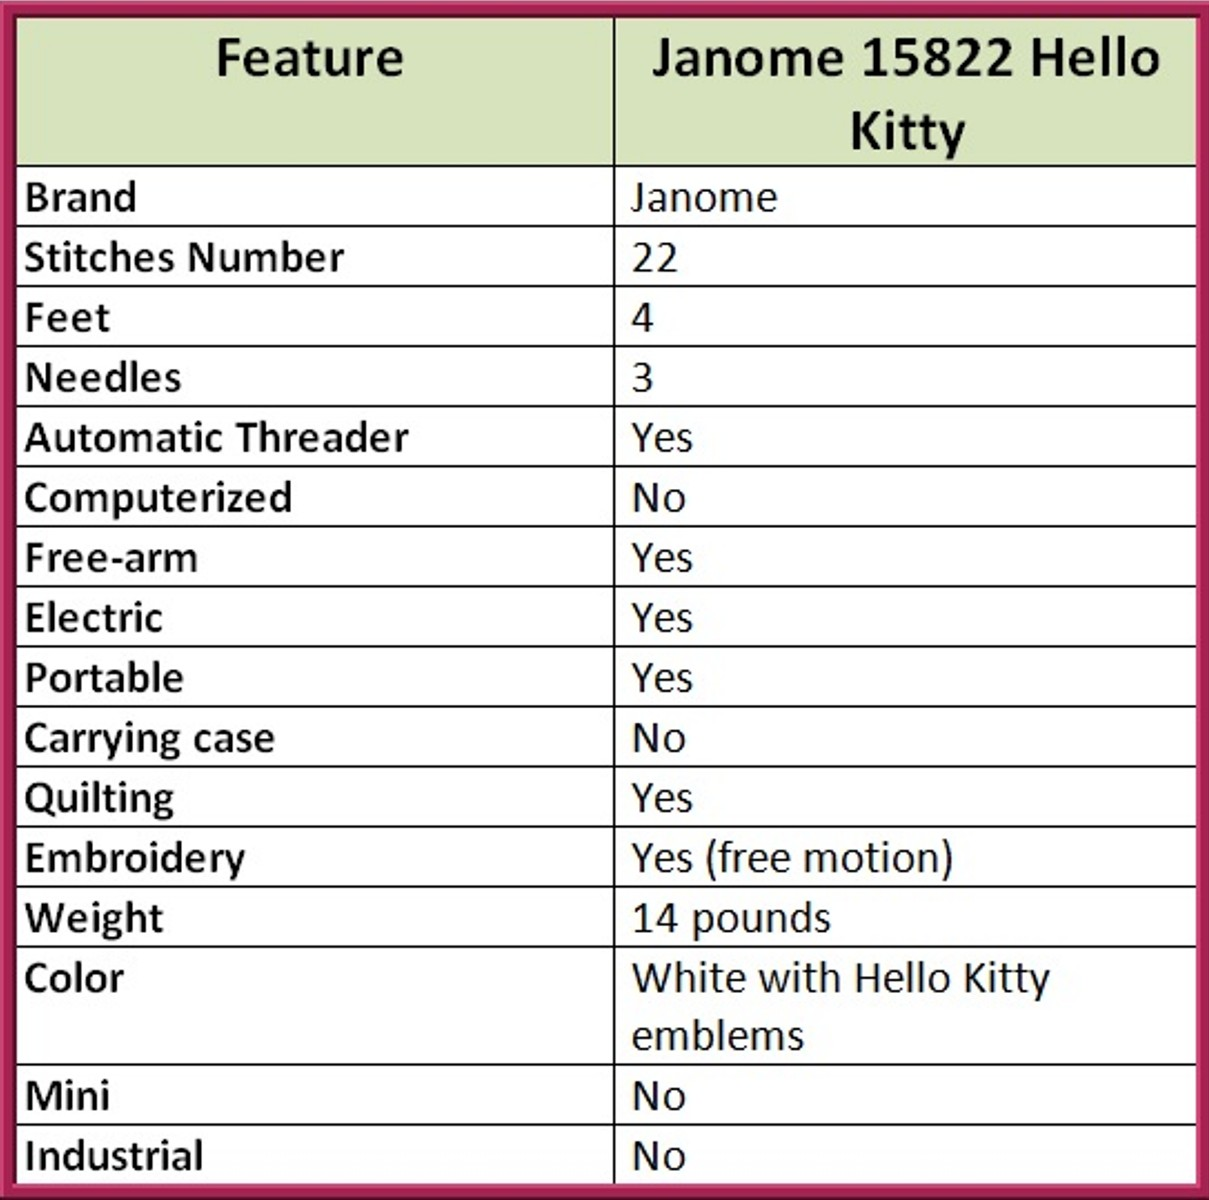 Janome 15822 List of Features